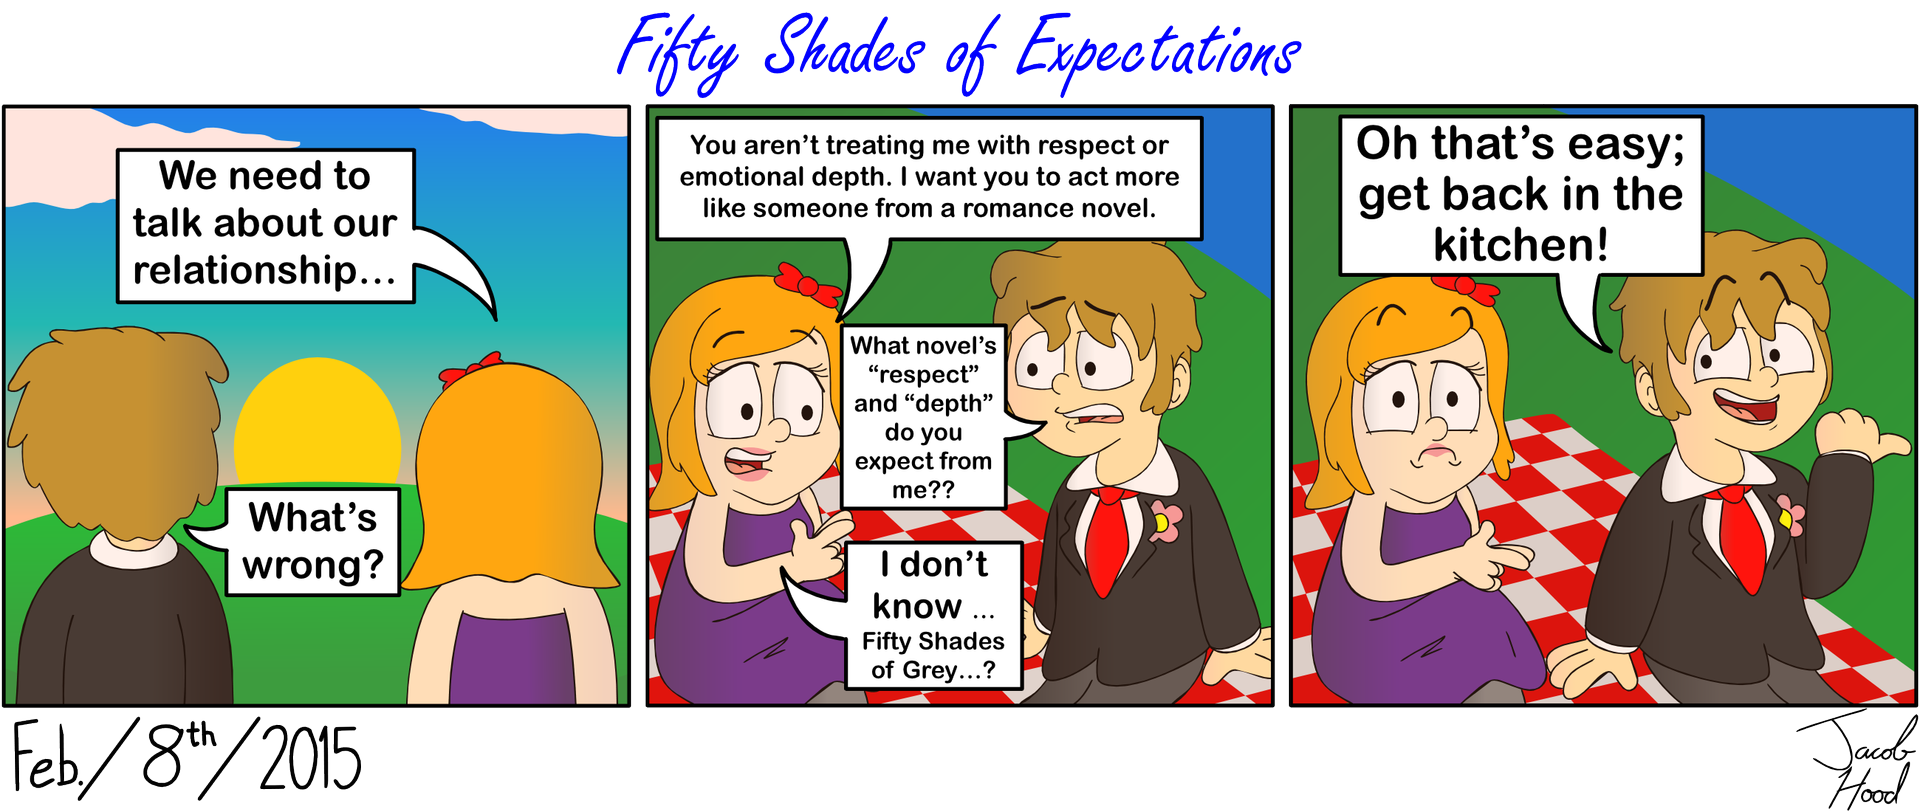 Fifty Shades of Expectations